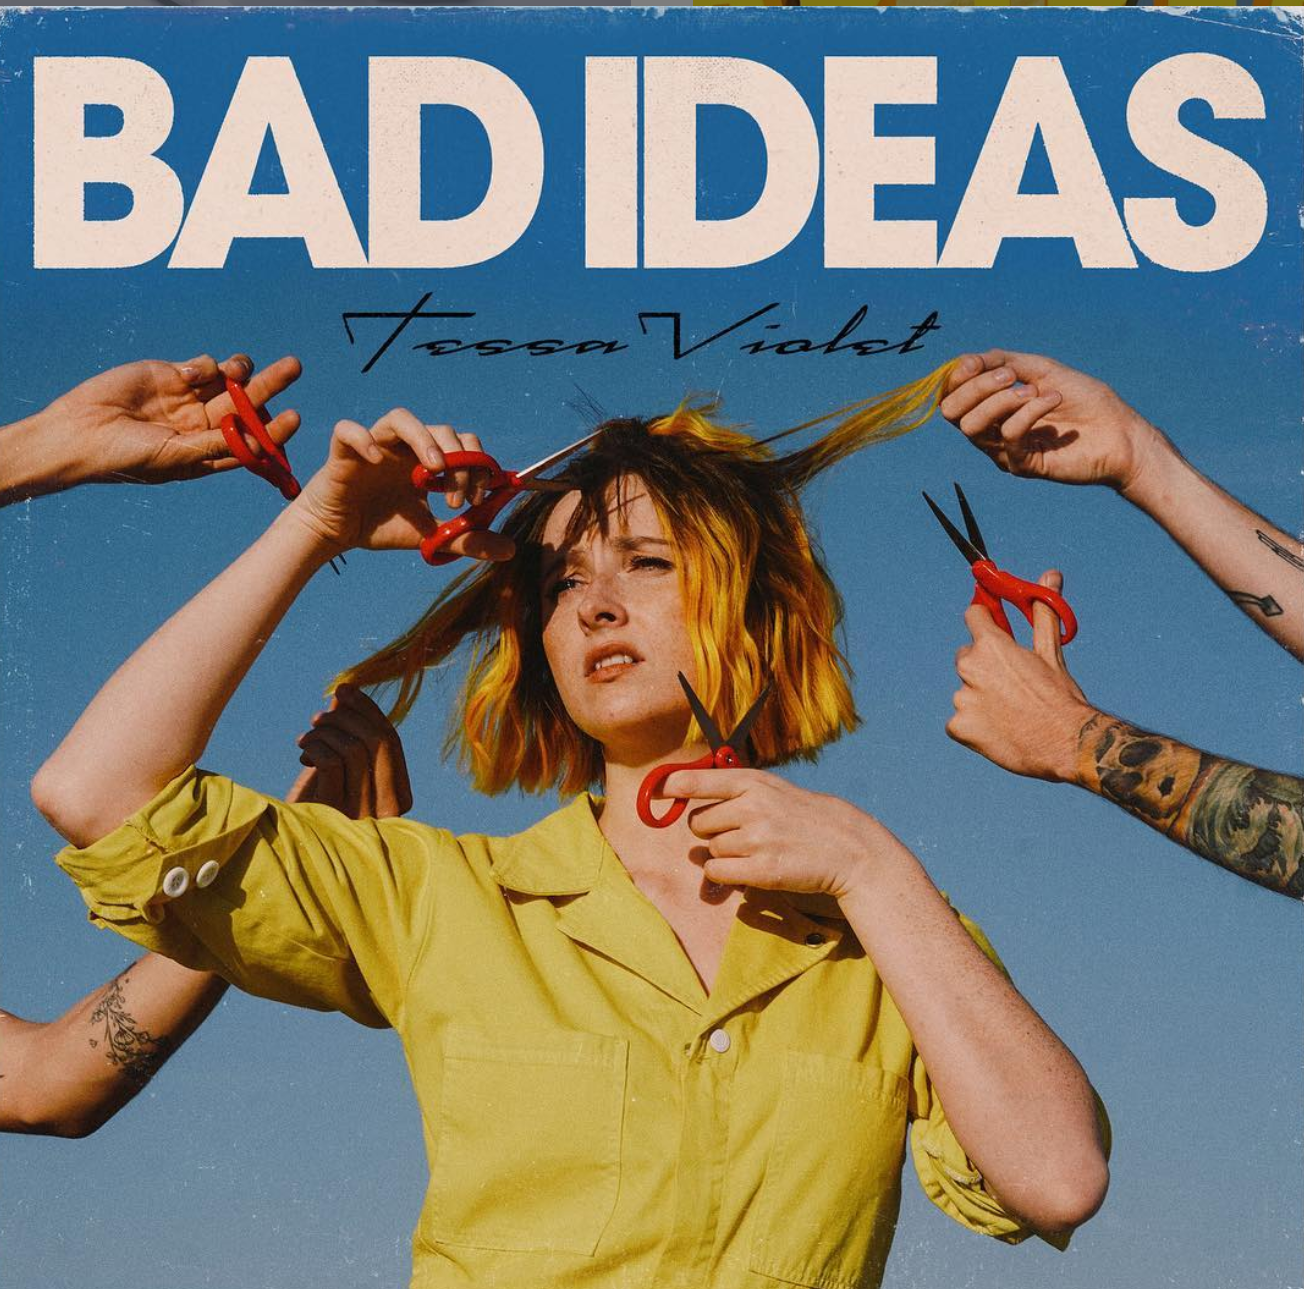 A promotional picture of the Bad Ideas music video posted by Tessa Violet.